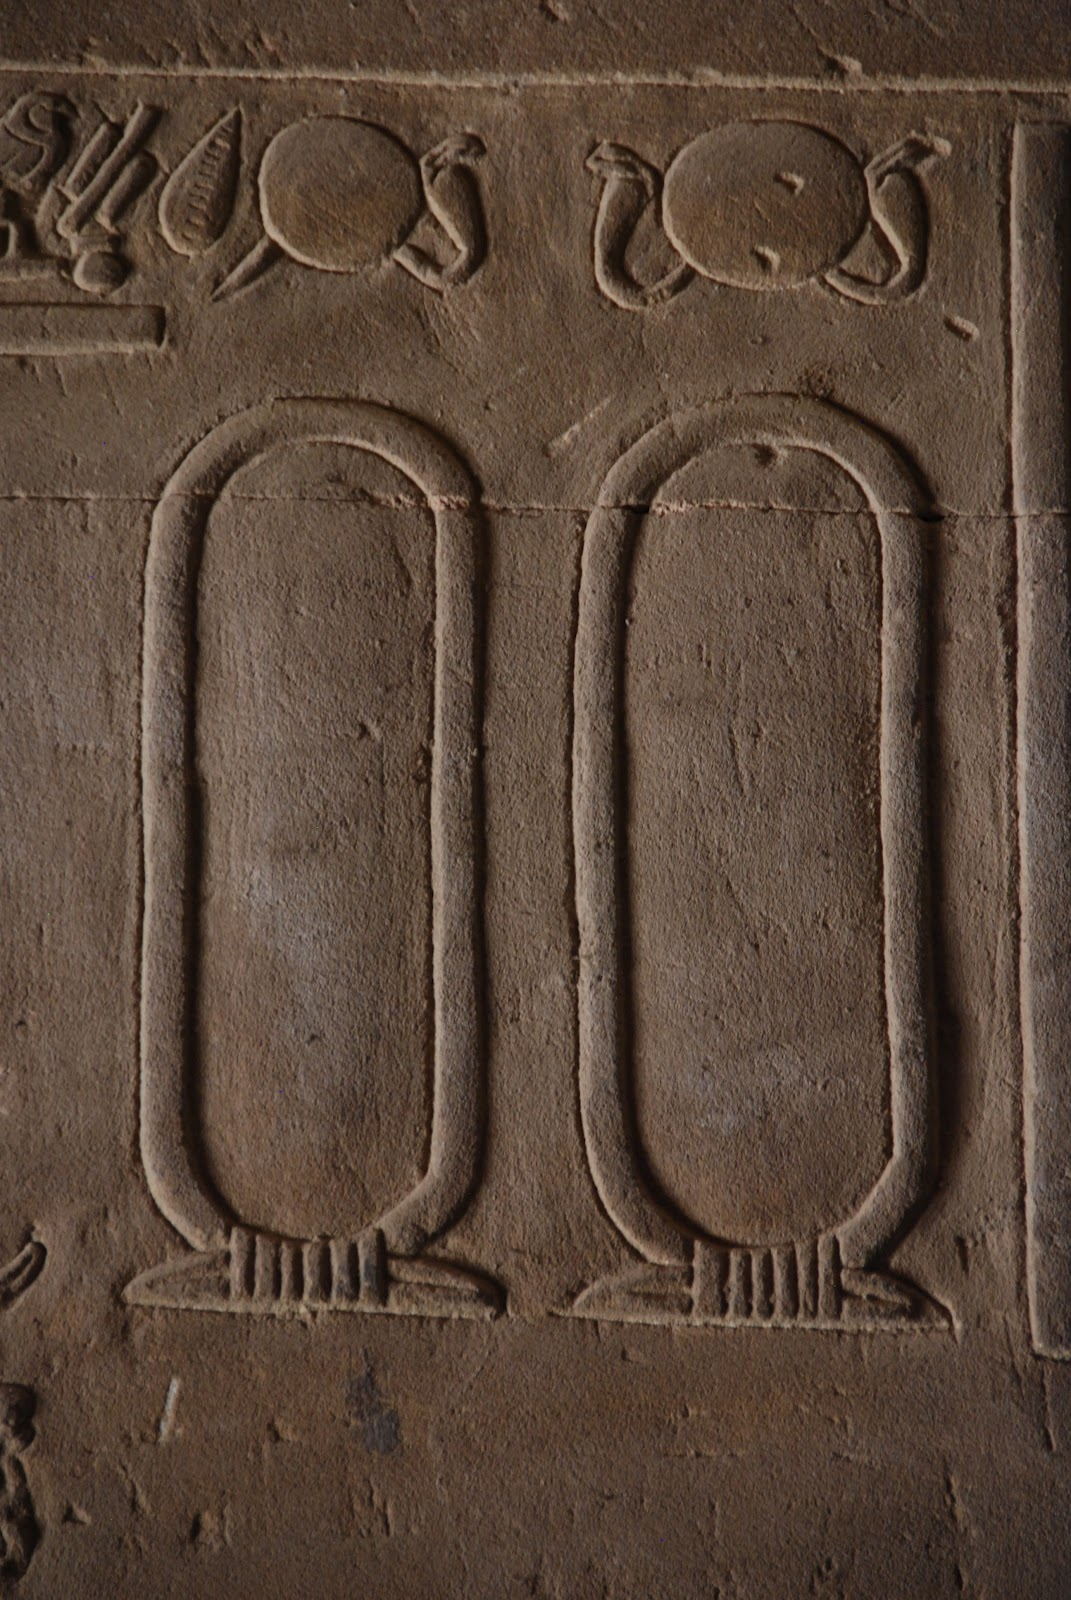 Blank cartouches usually cartouches had the pharaoh s name inscribed